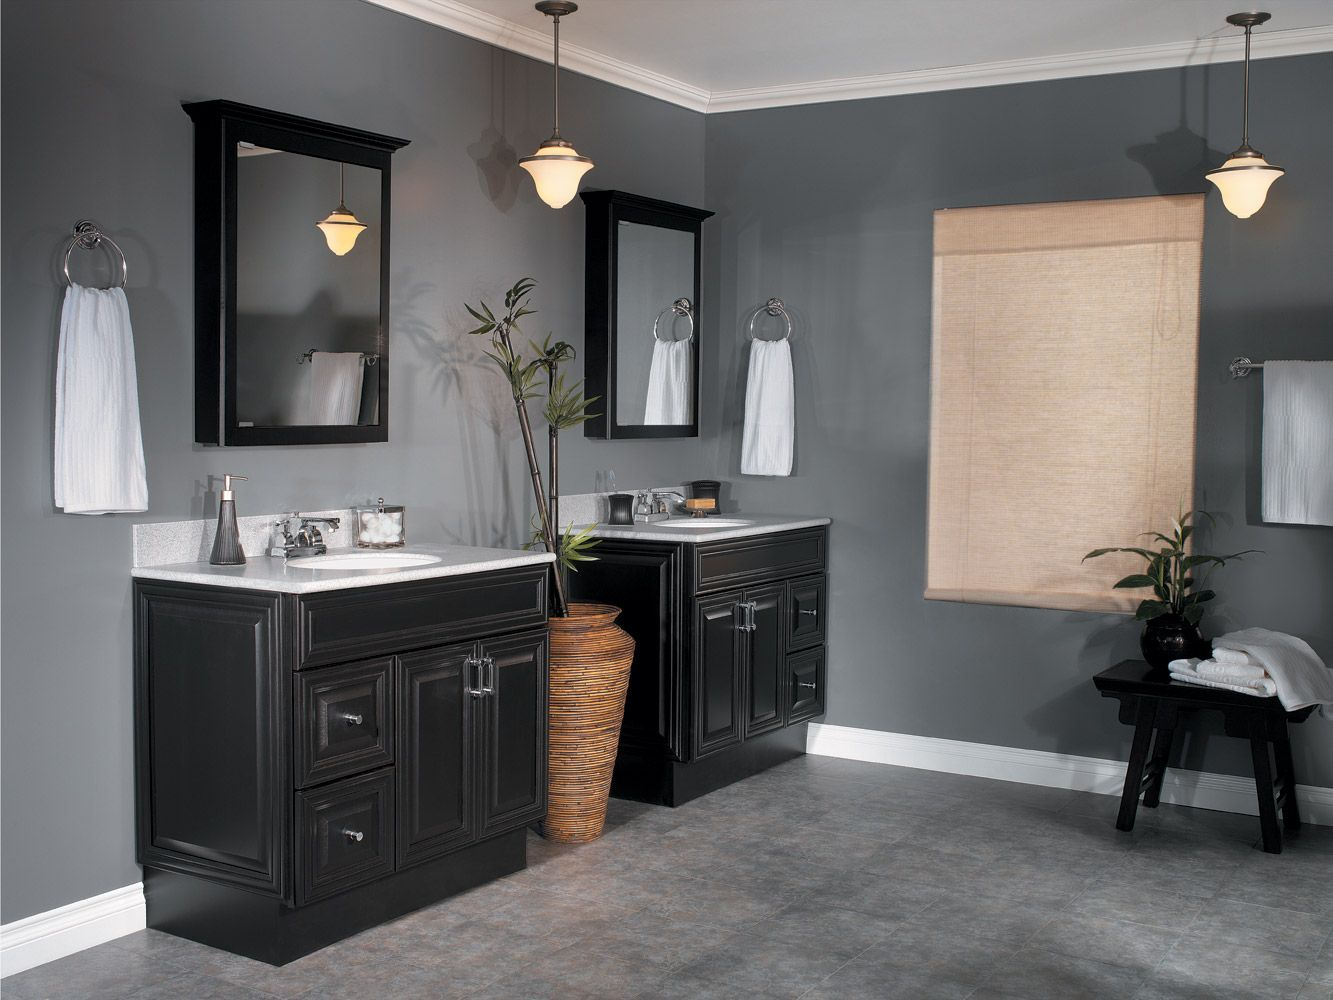 31 Best Bathroom Cabinets Ideas That Will Help You Save Fixtures